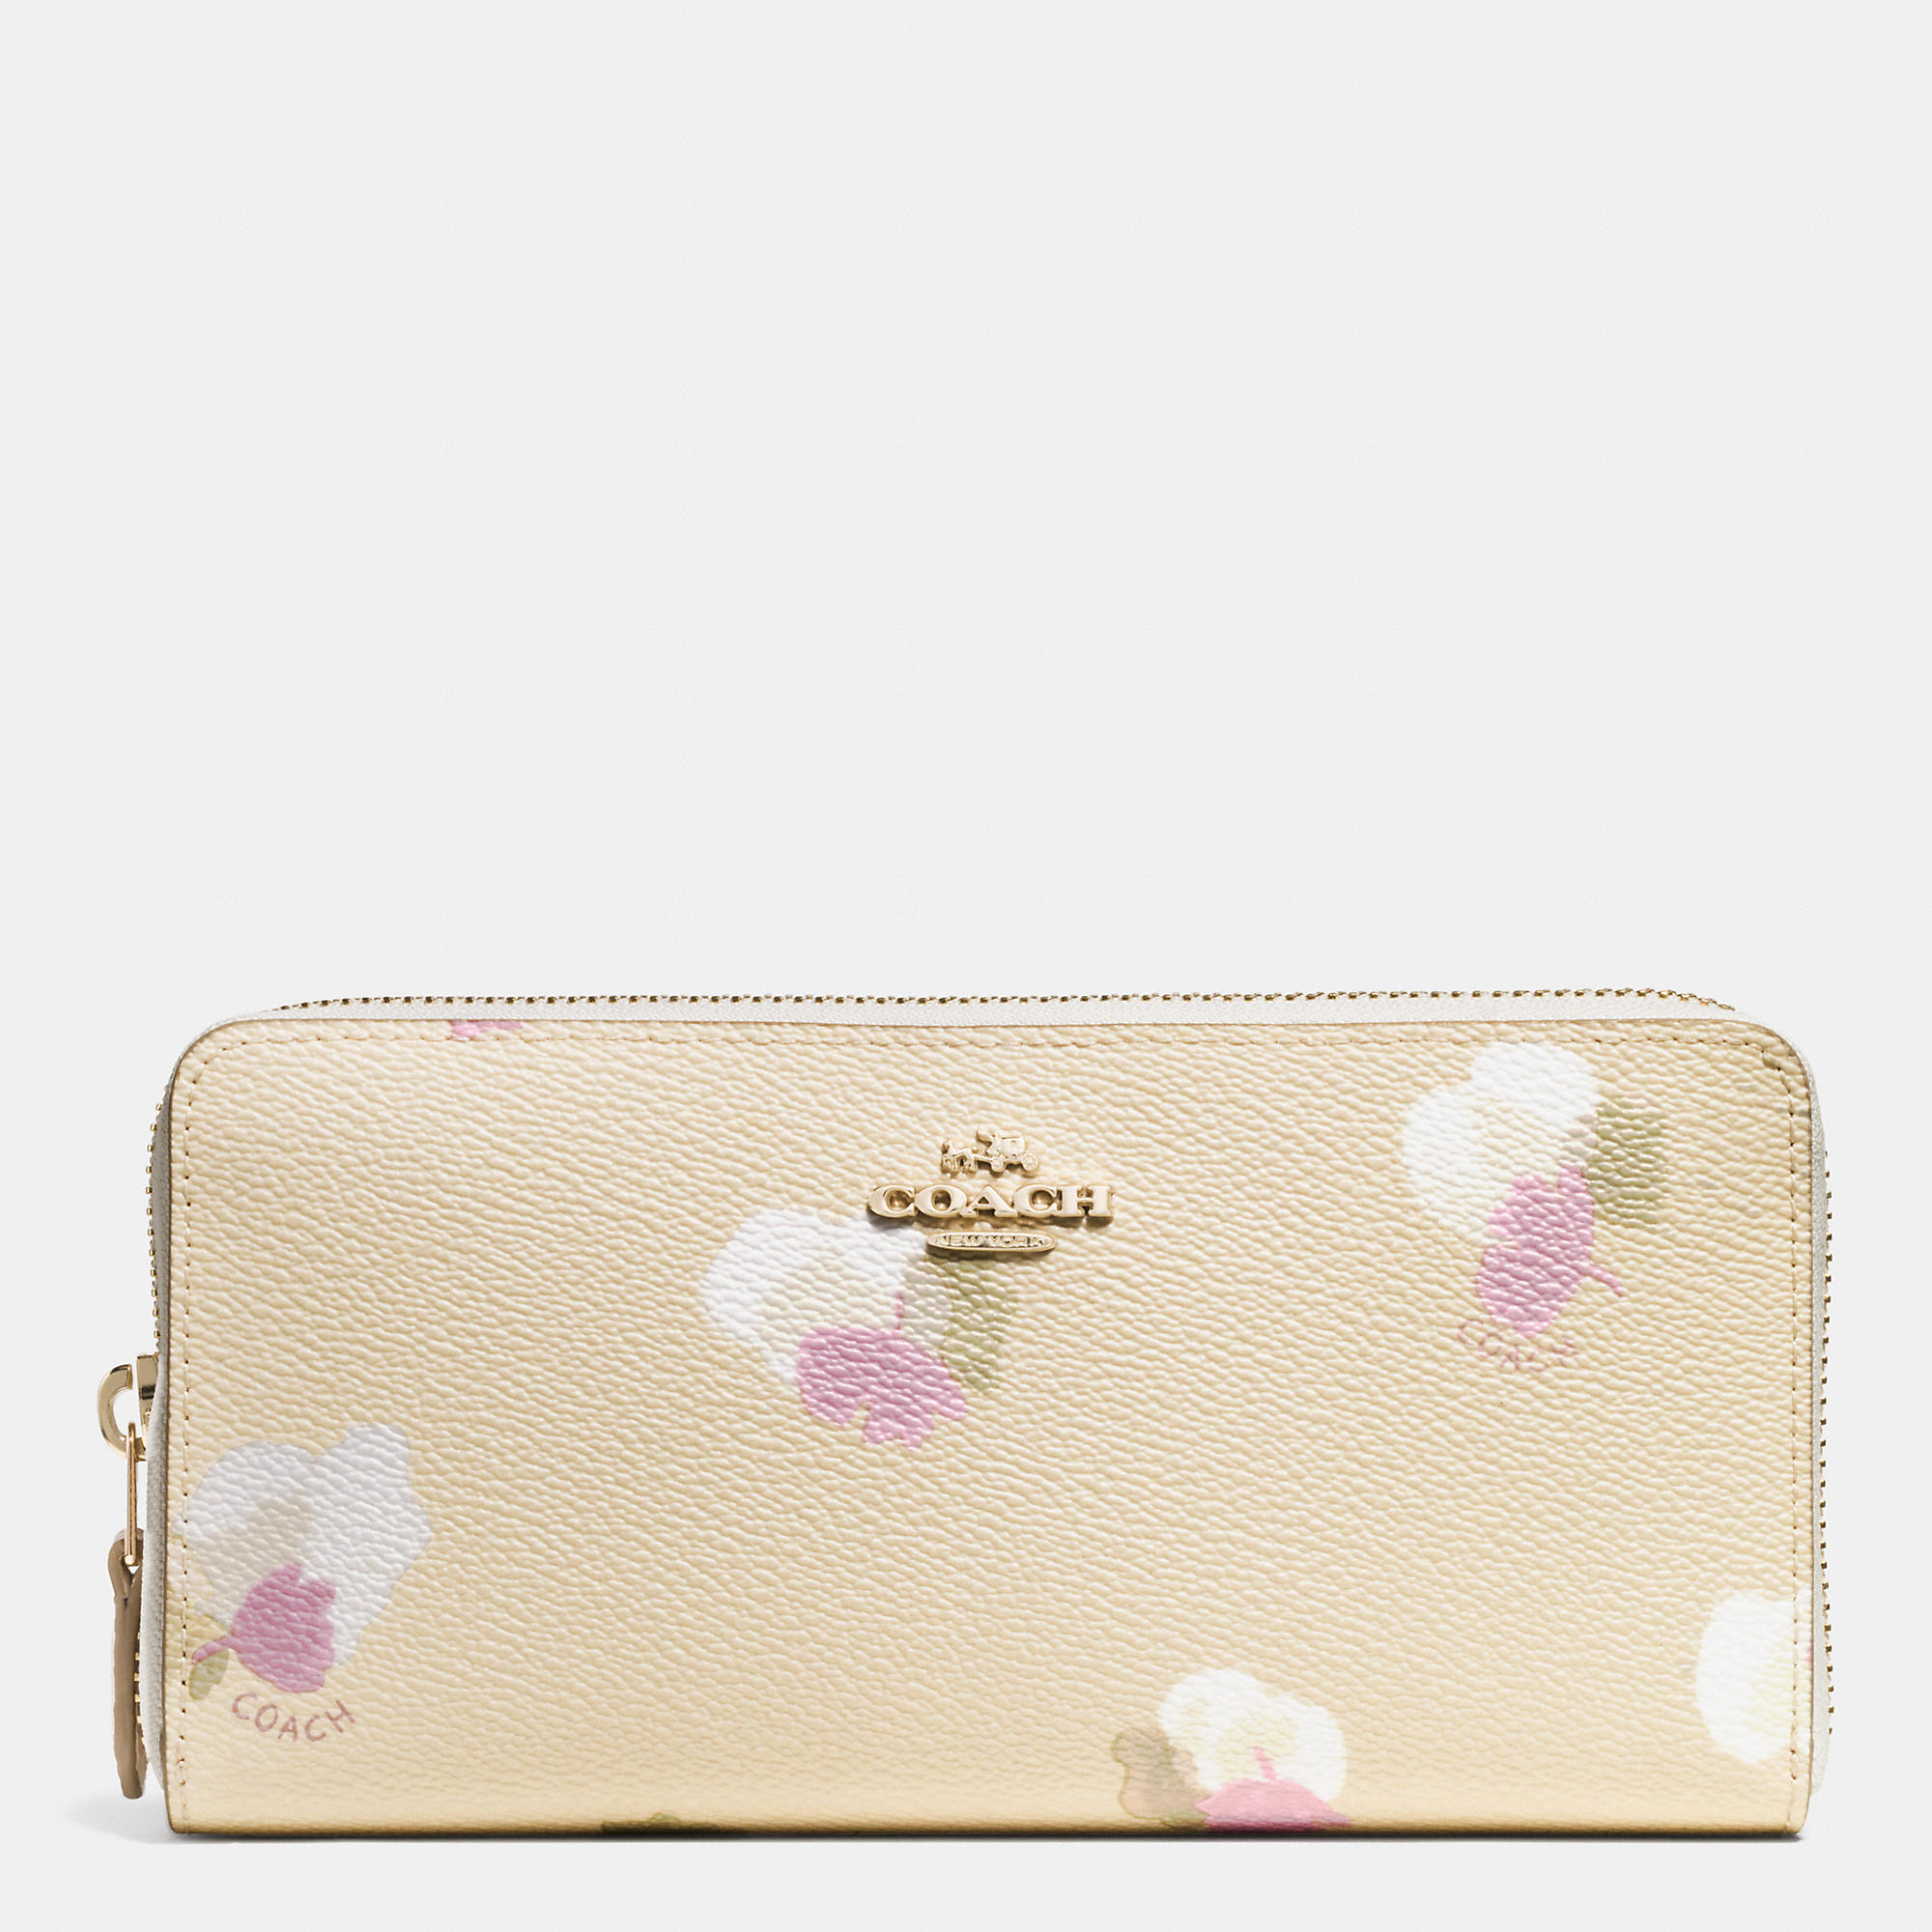 Lyst - COACH Accordion Zip Wallet In Floral Print Coated Canvas in ... ff237a828e